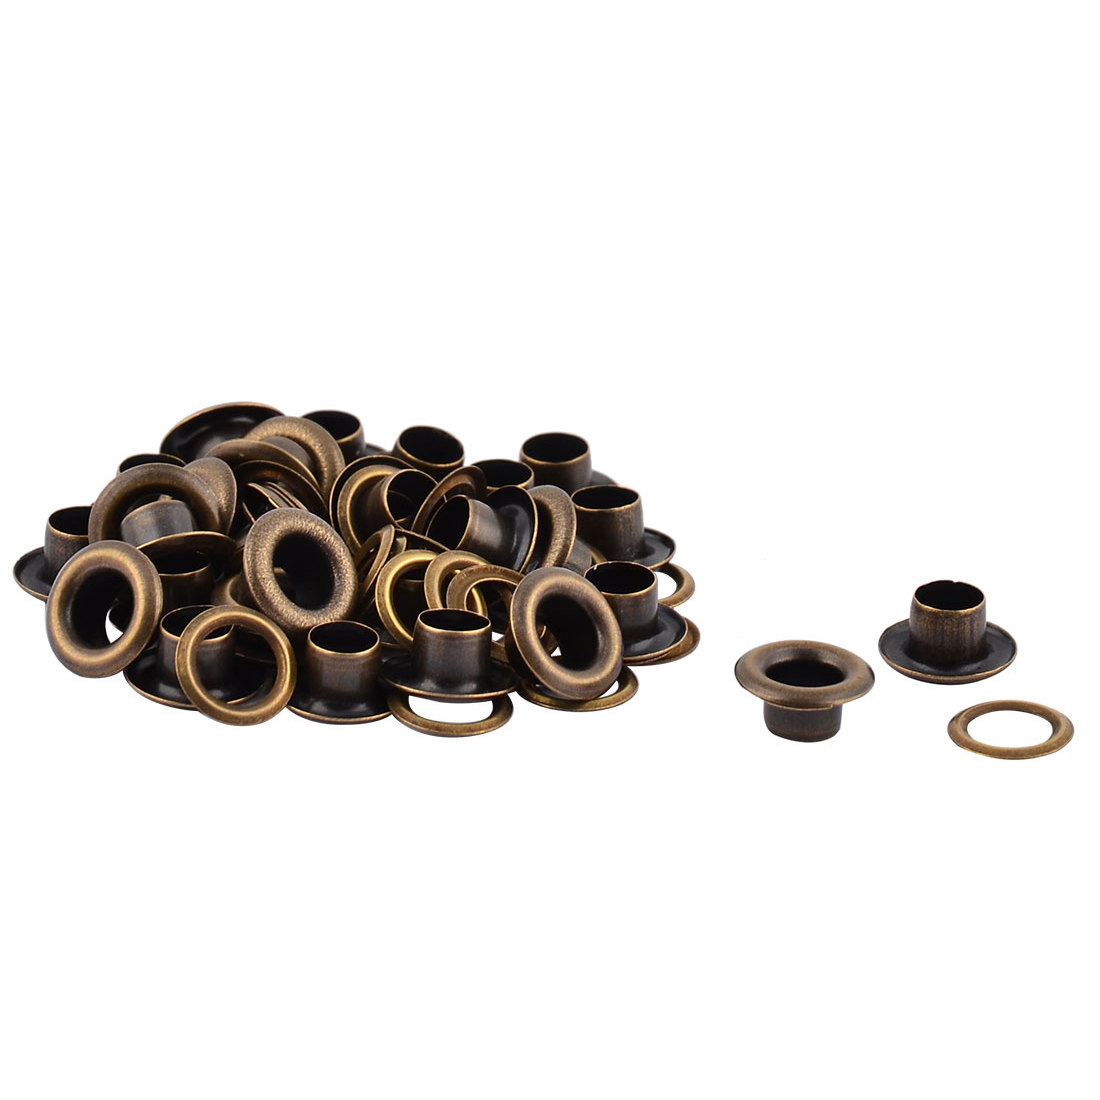 Cloth Bag Craft Metal Machine Grommet Washer Hole Eyelet Hollow Rivet Bronze Tone 30 Pieces